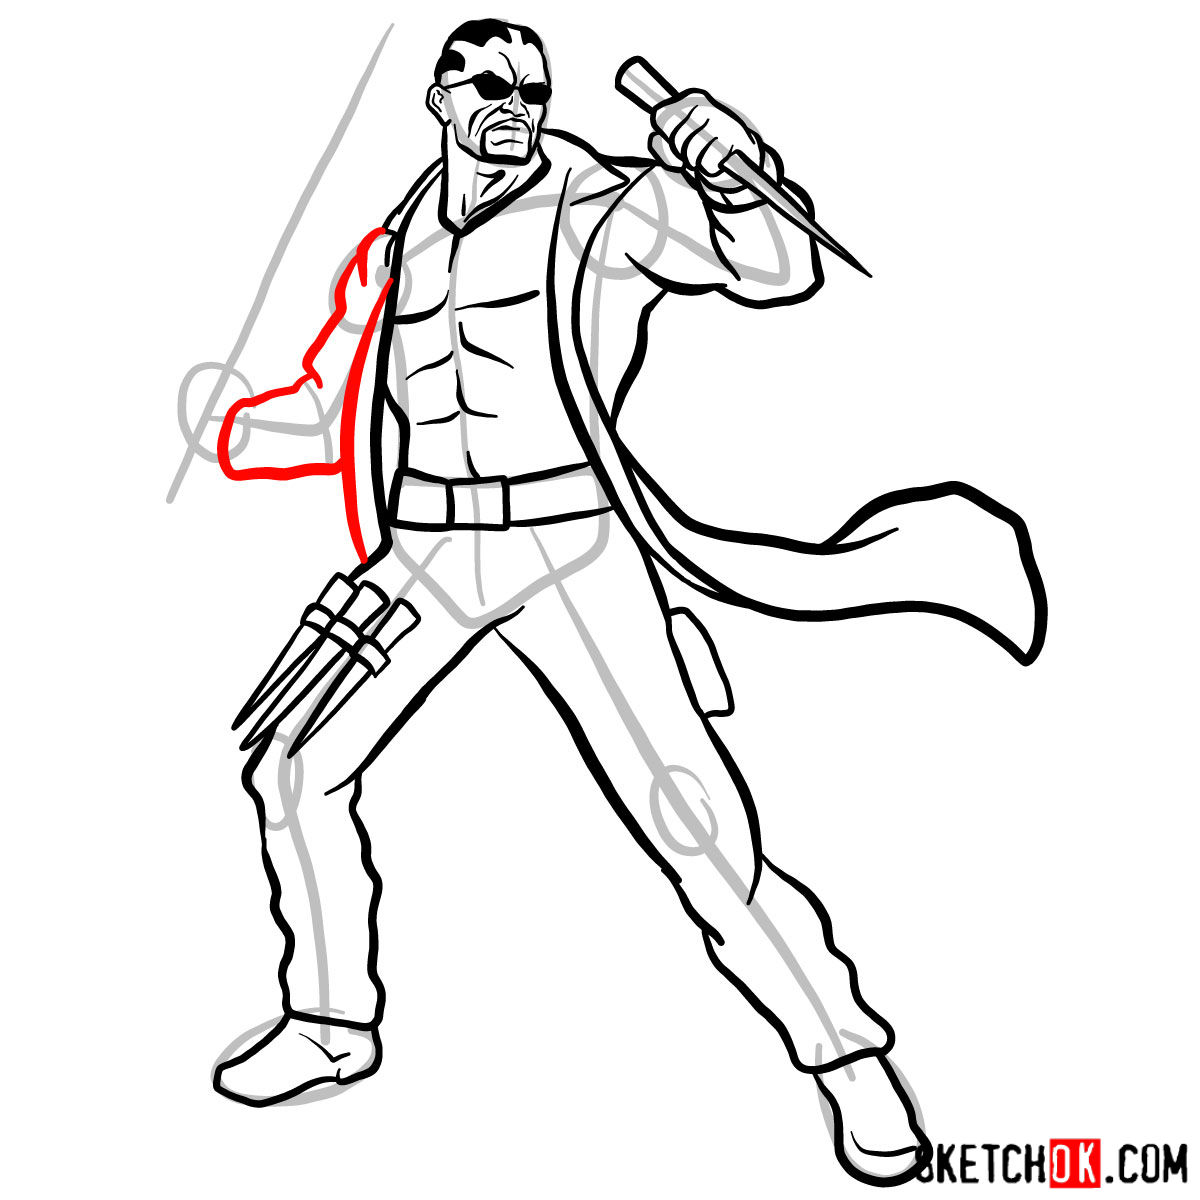 How to draw Blade from Marvel Comics - step 13